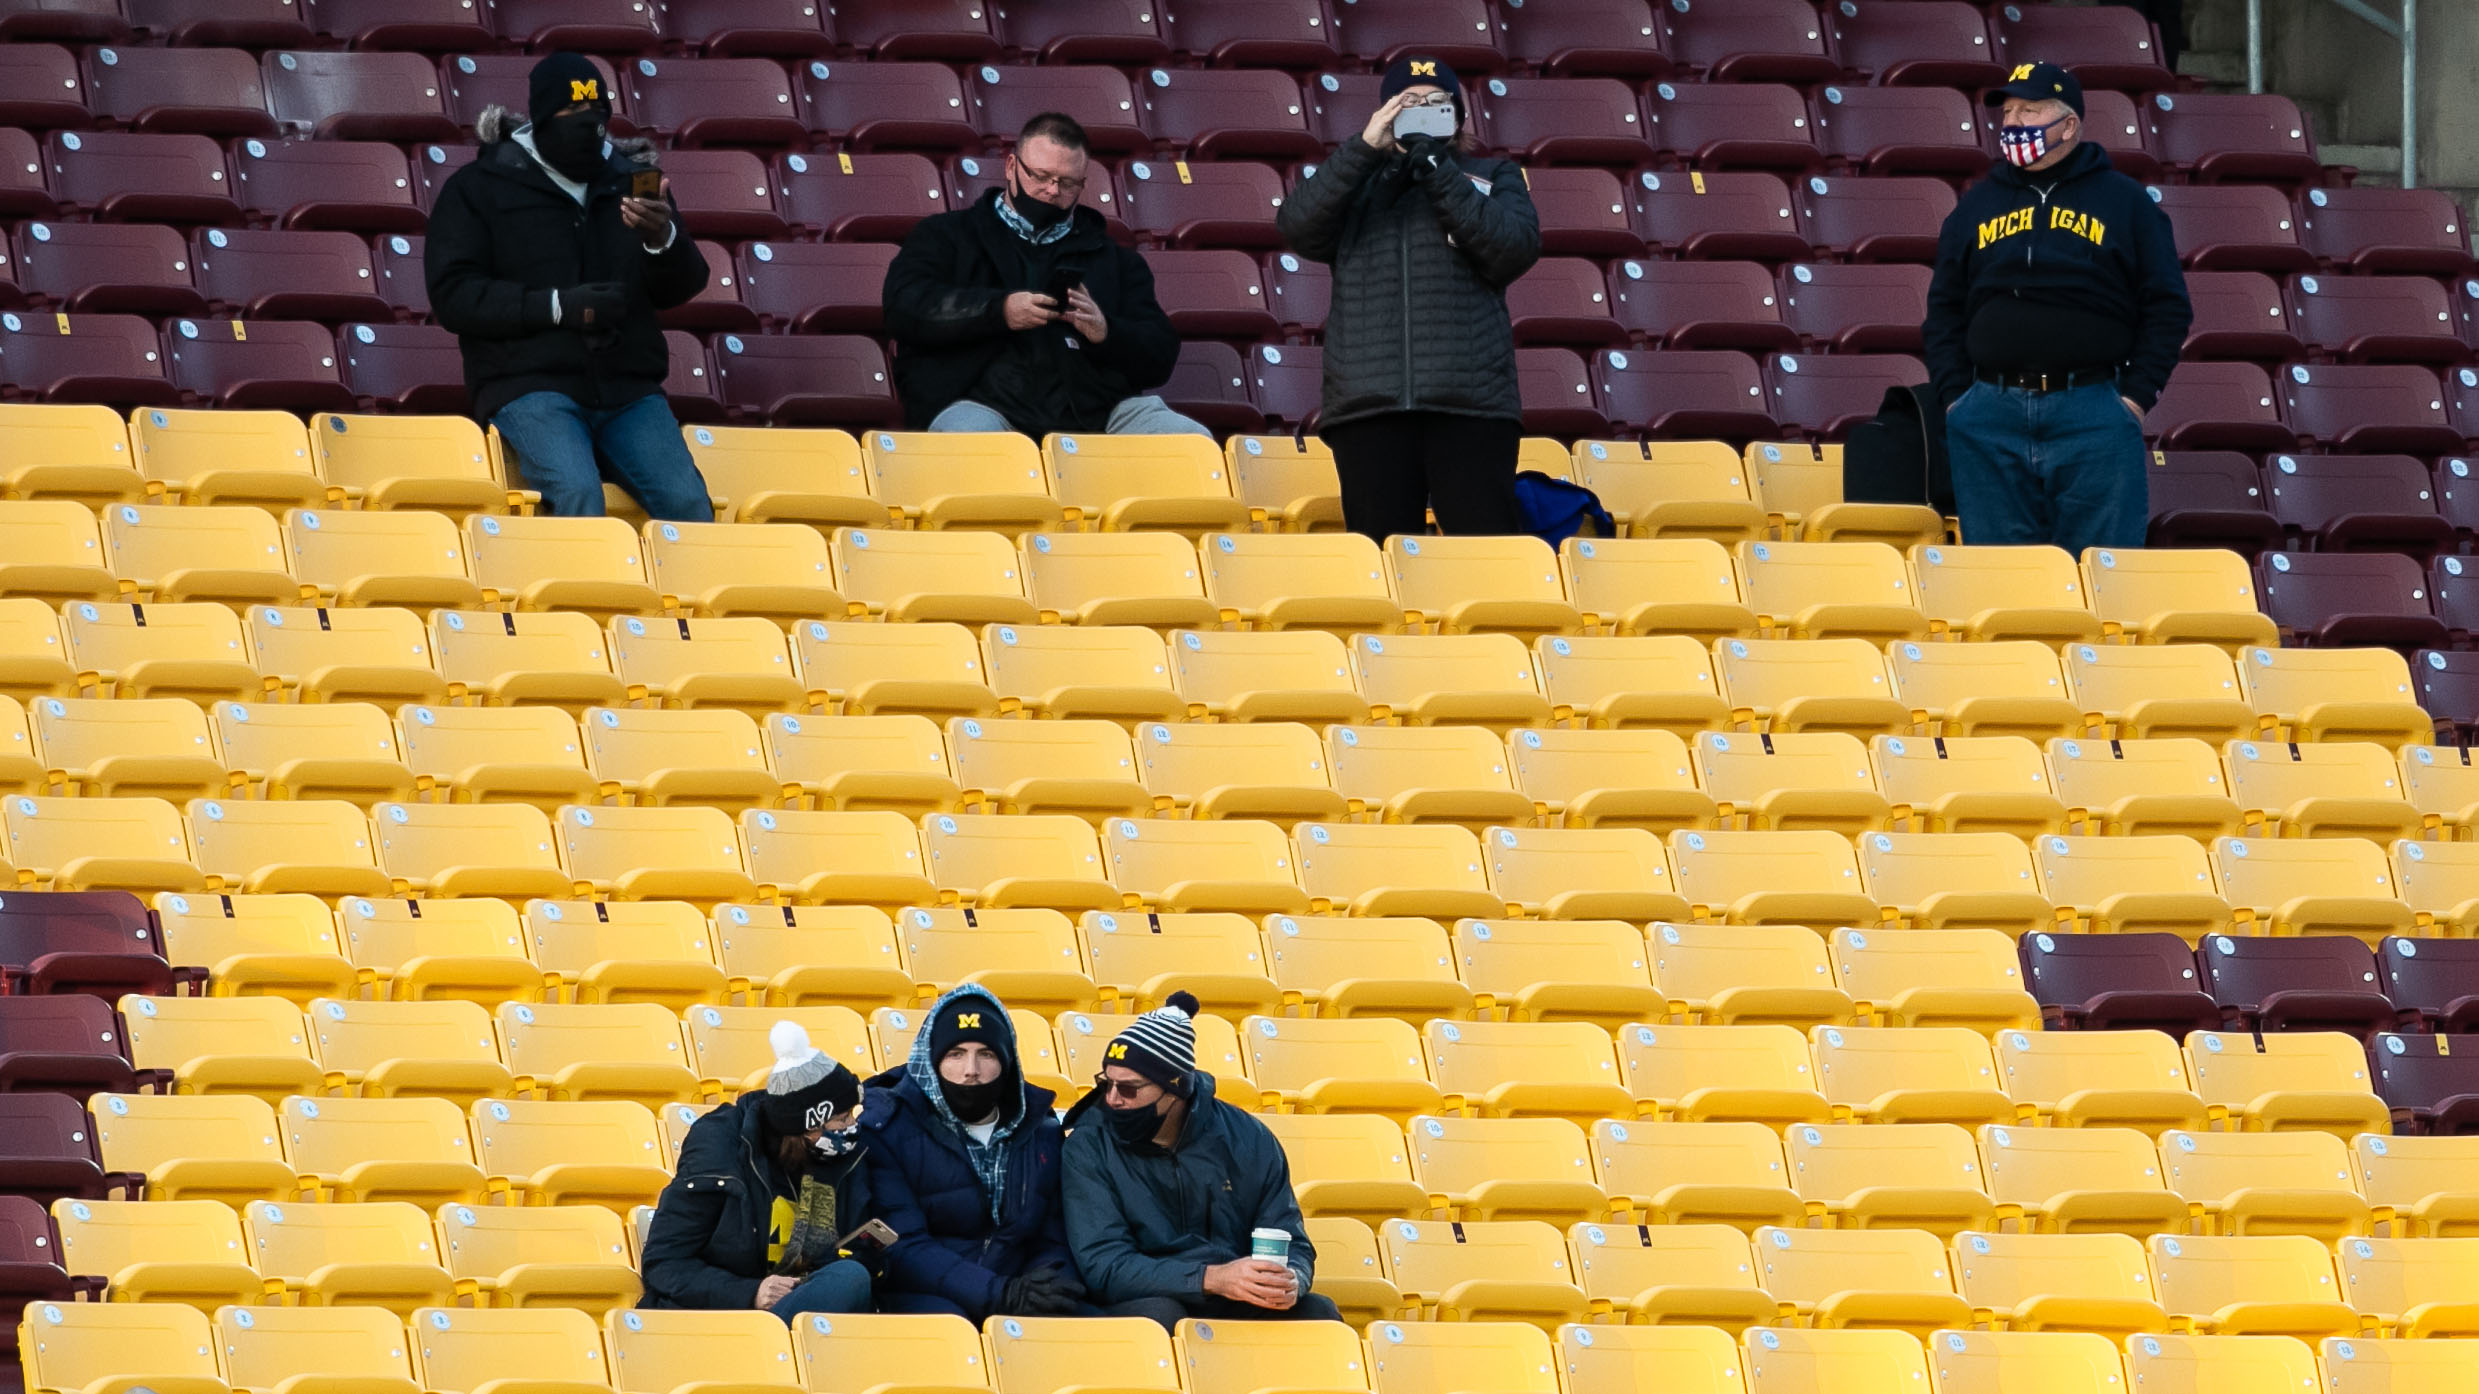 Michigan fans sitting socially distant with masks on